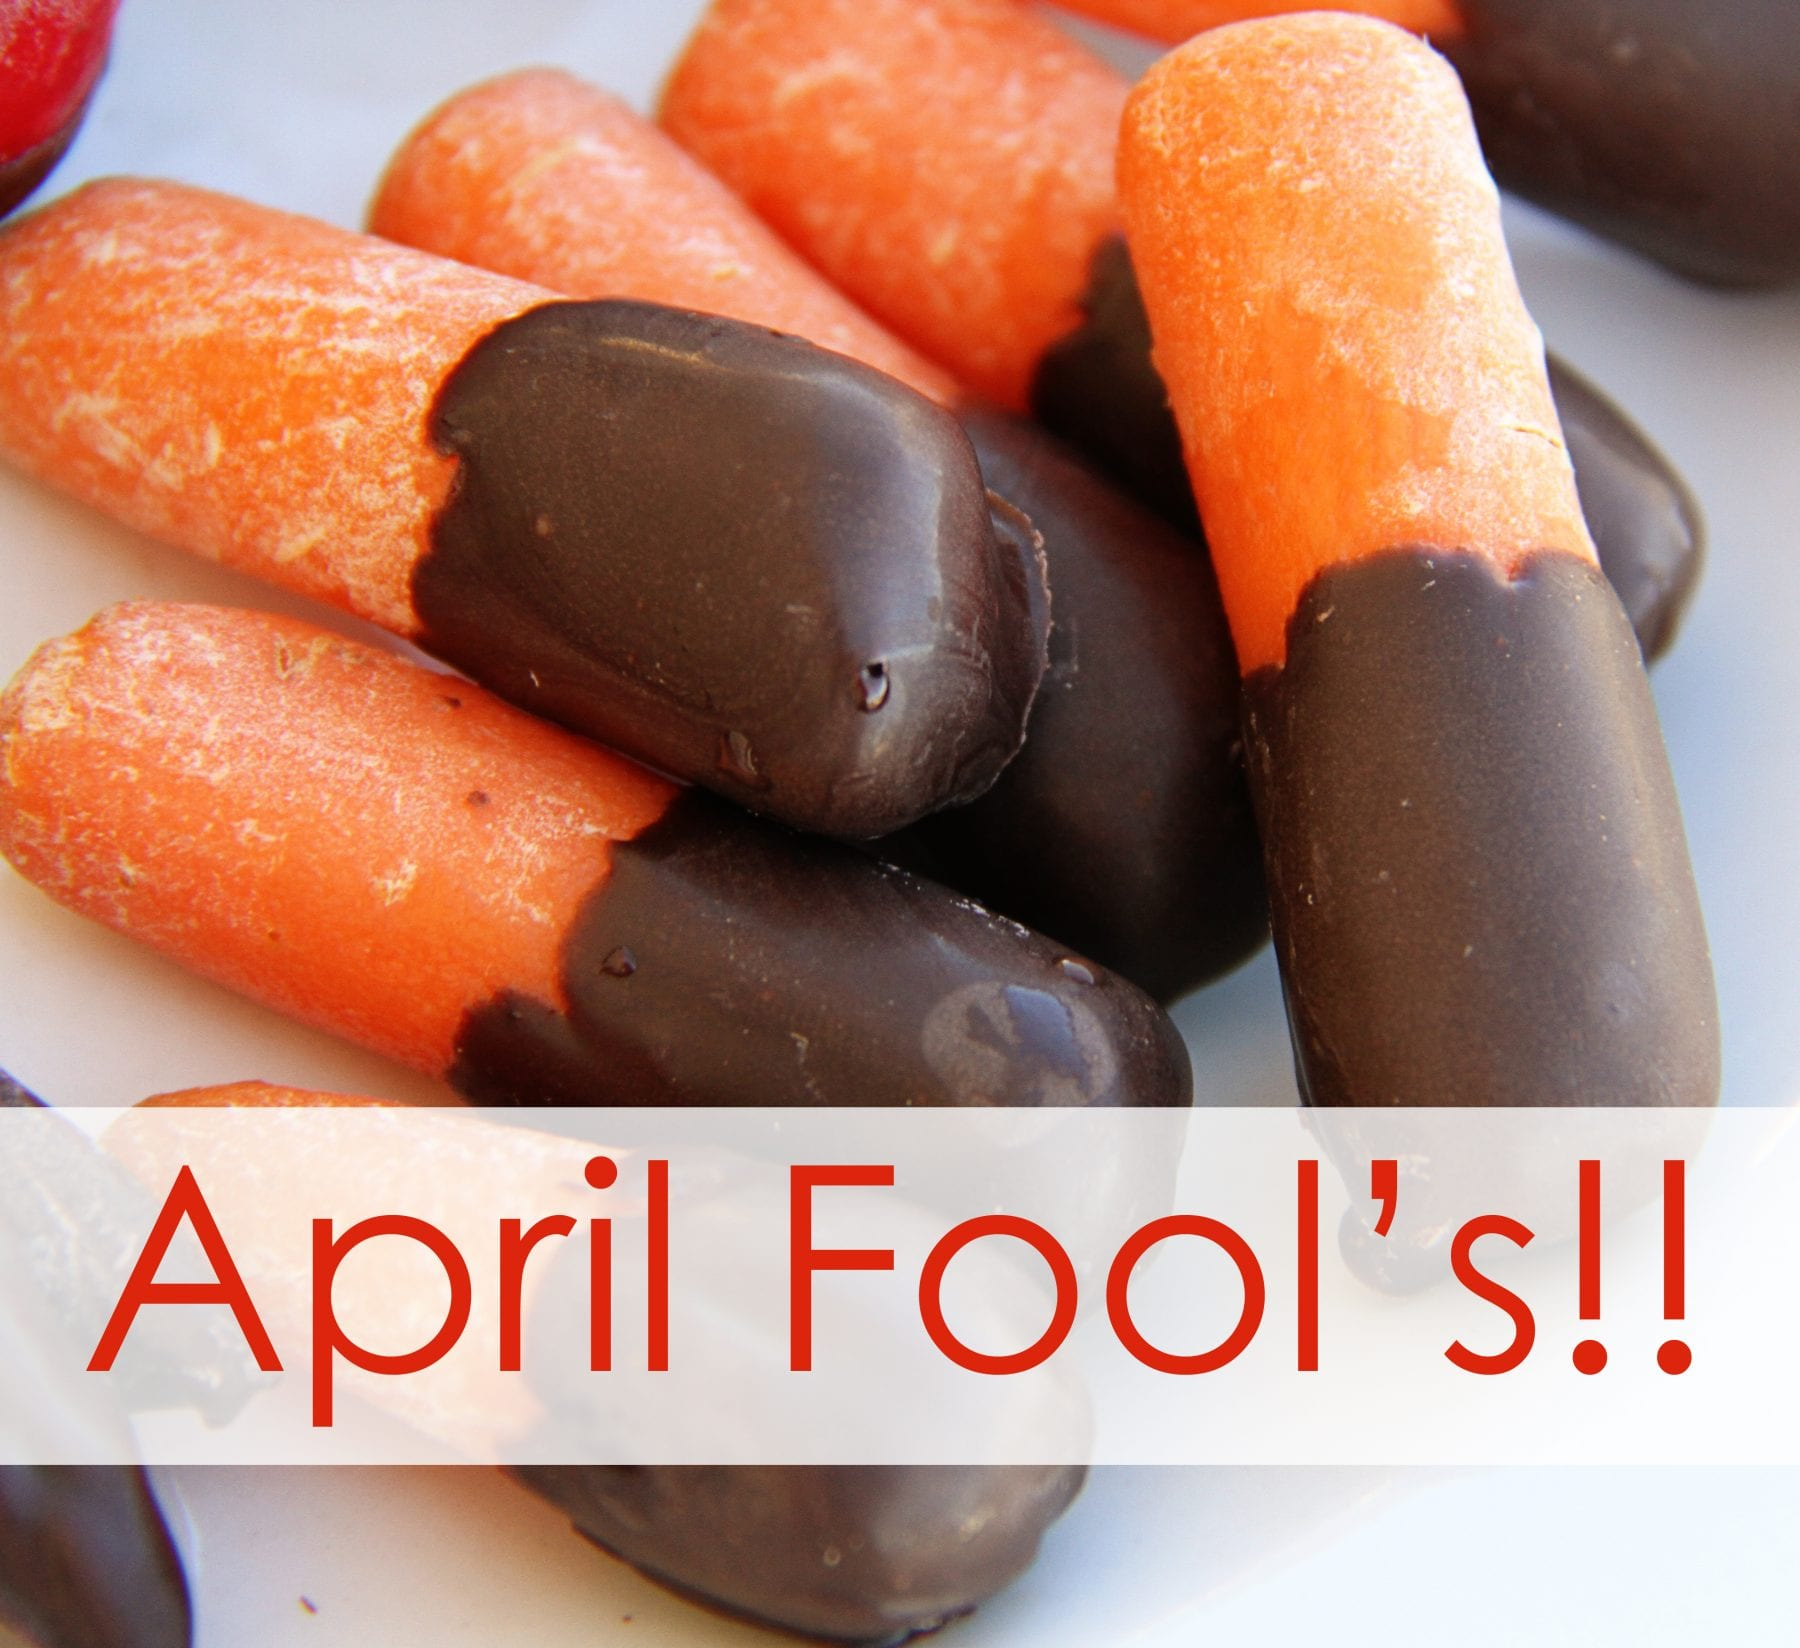 Did you catch my April Fool's trick yesterday?